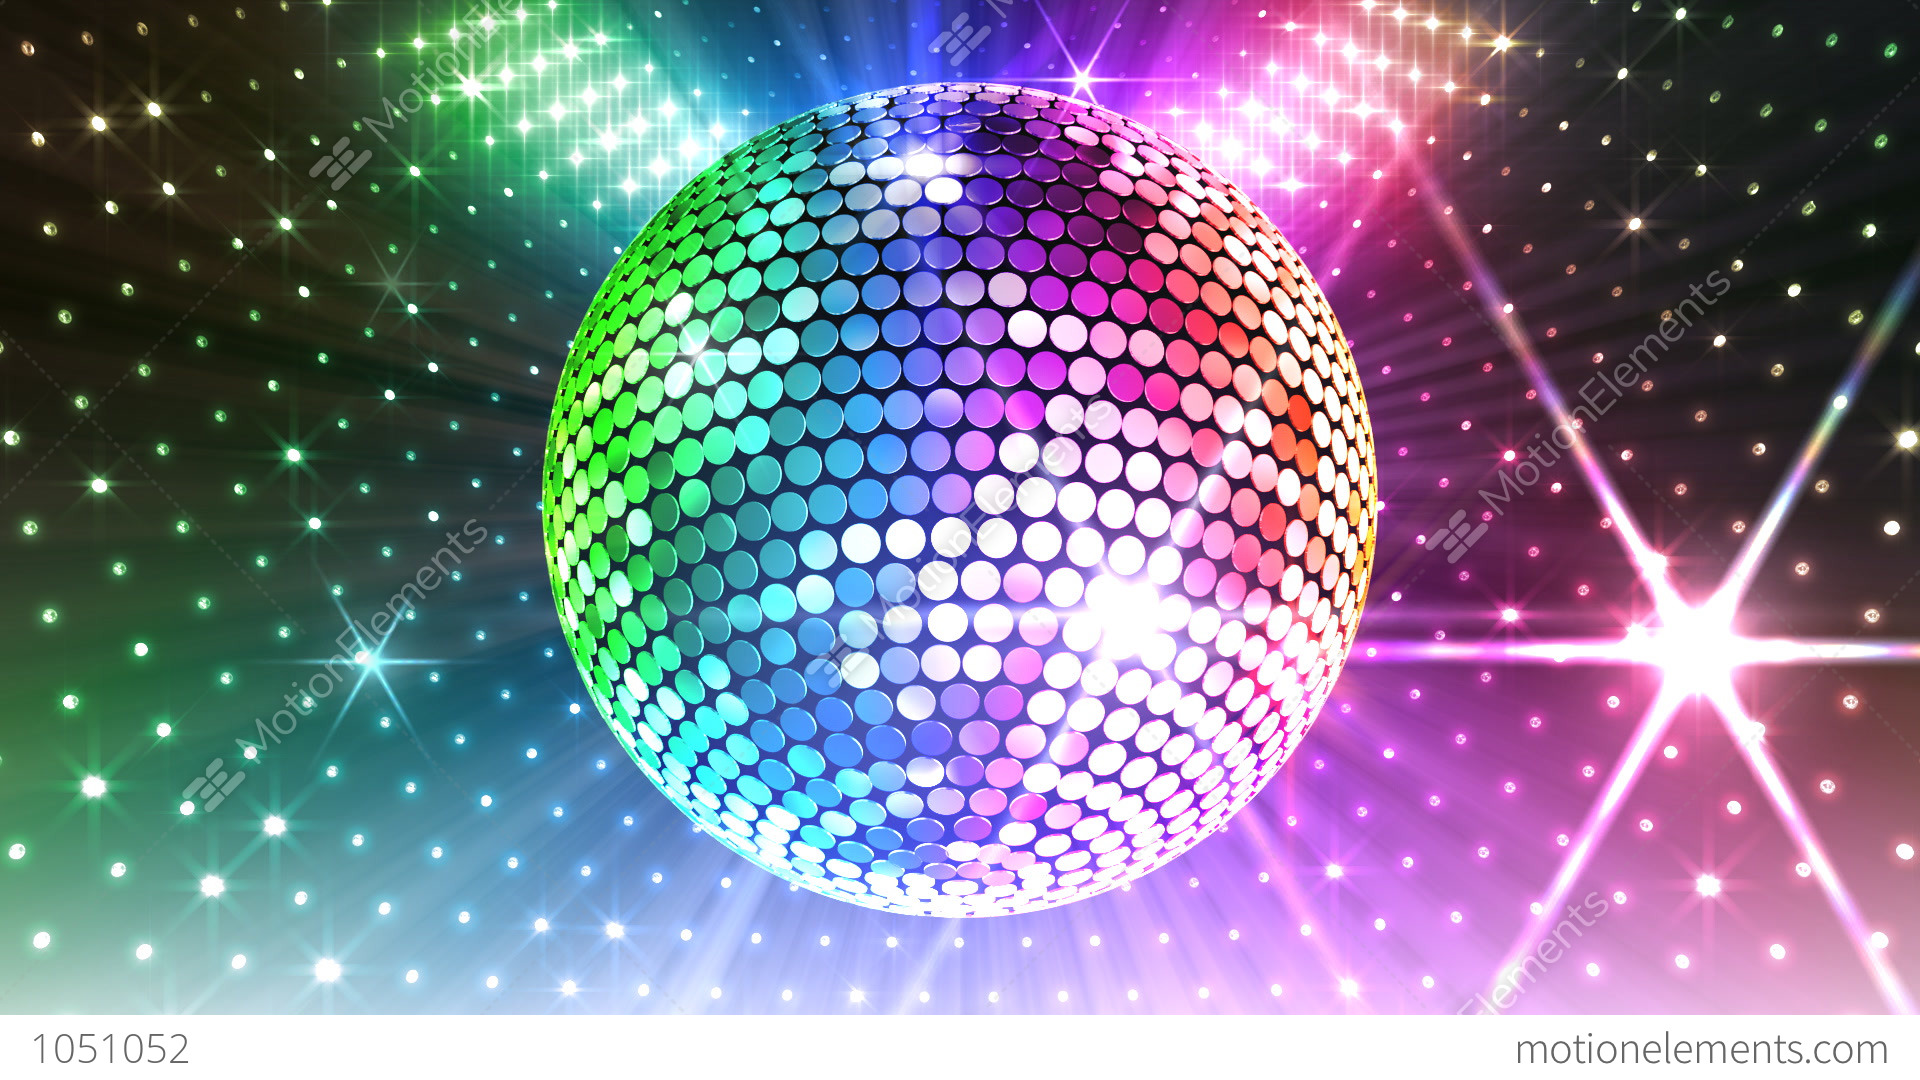 Disco ball animated